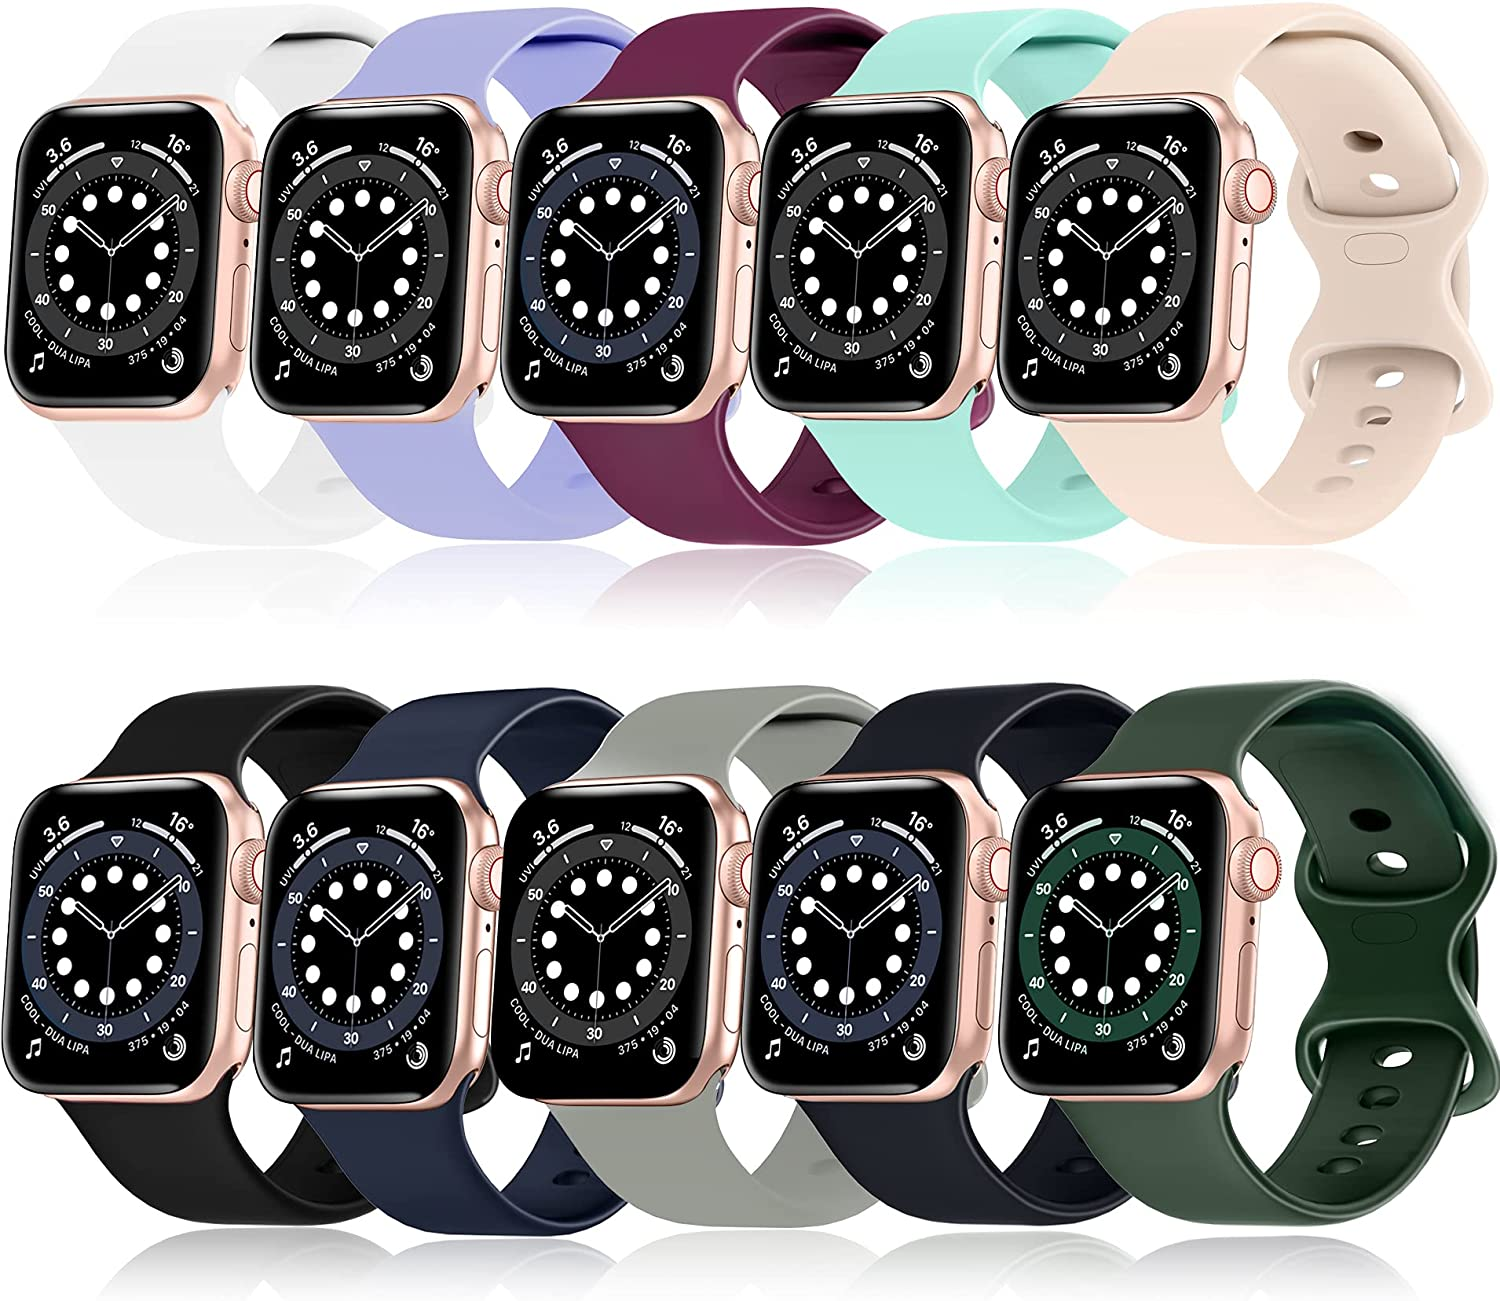 Mocodi 10 Pack Sport Bands Compatible for Apple Watch Bands 38mm 40mm,Soft Silicone Sport Women Men Replacement Strap Compatible with iWatch Series SE/6/5/4/3/2/1(38mm/40mm-S/M, Small)